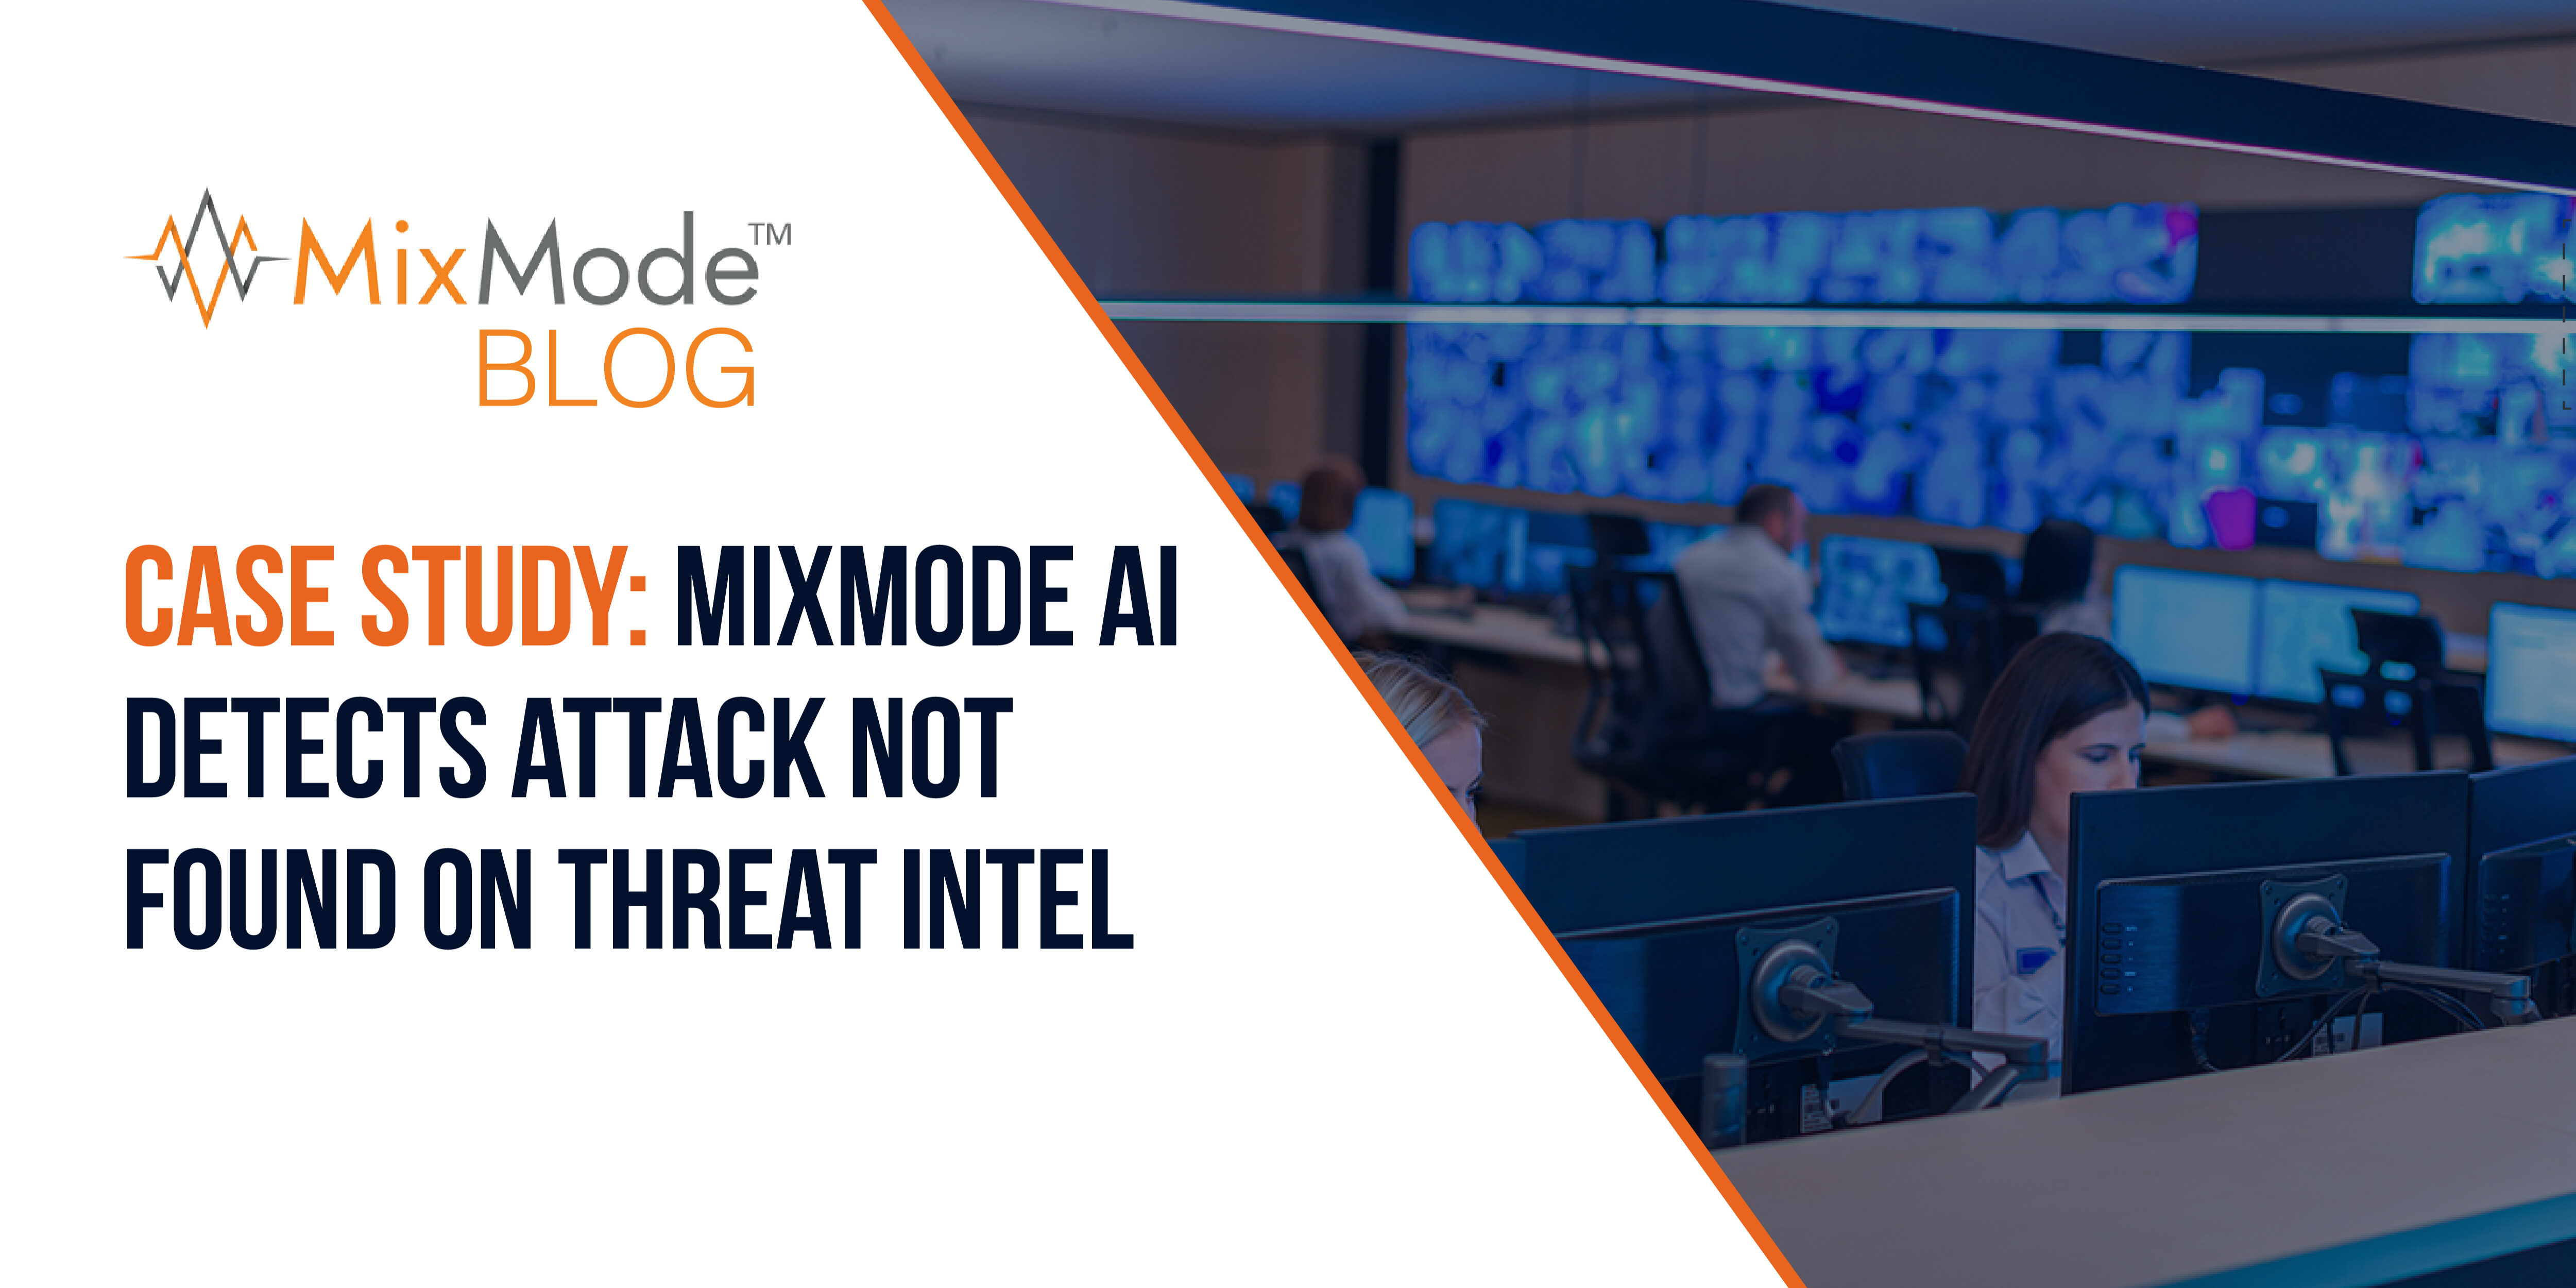 MixMode AI Detects Attack Not Found on Threat Intel-21